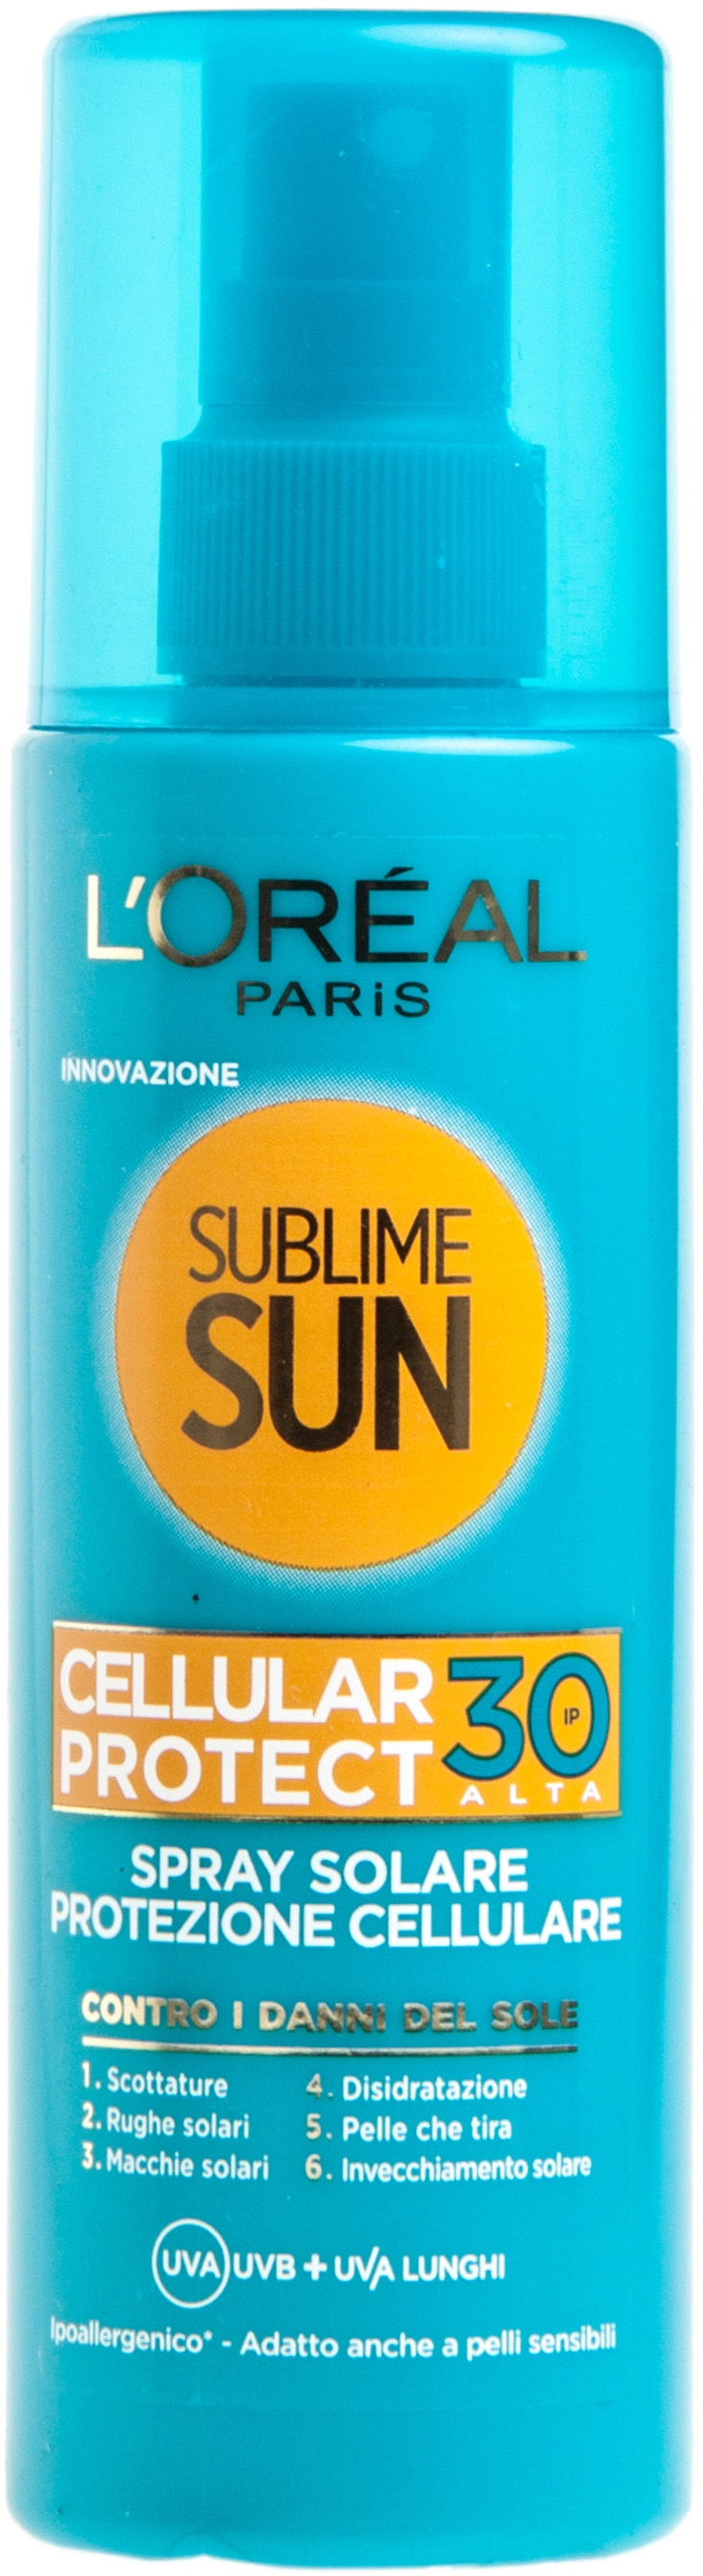 Sublime sun cellular protect